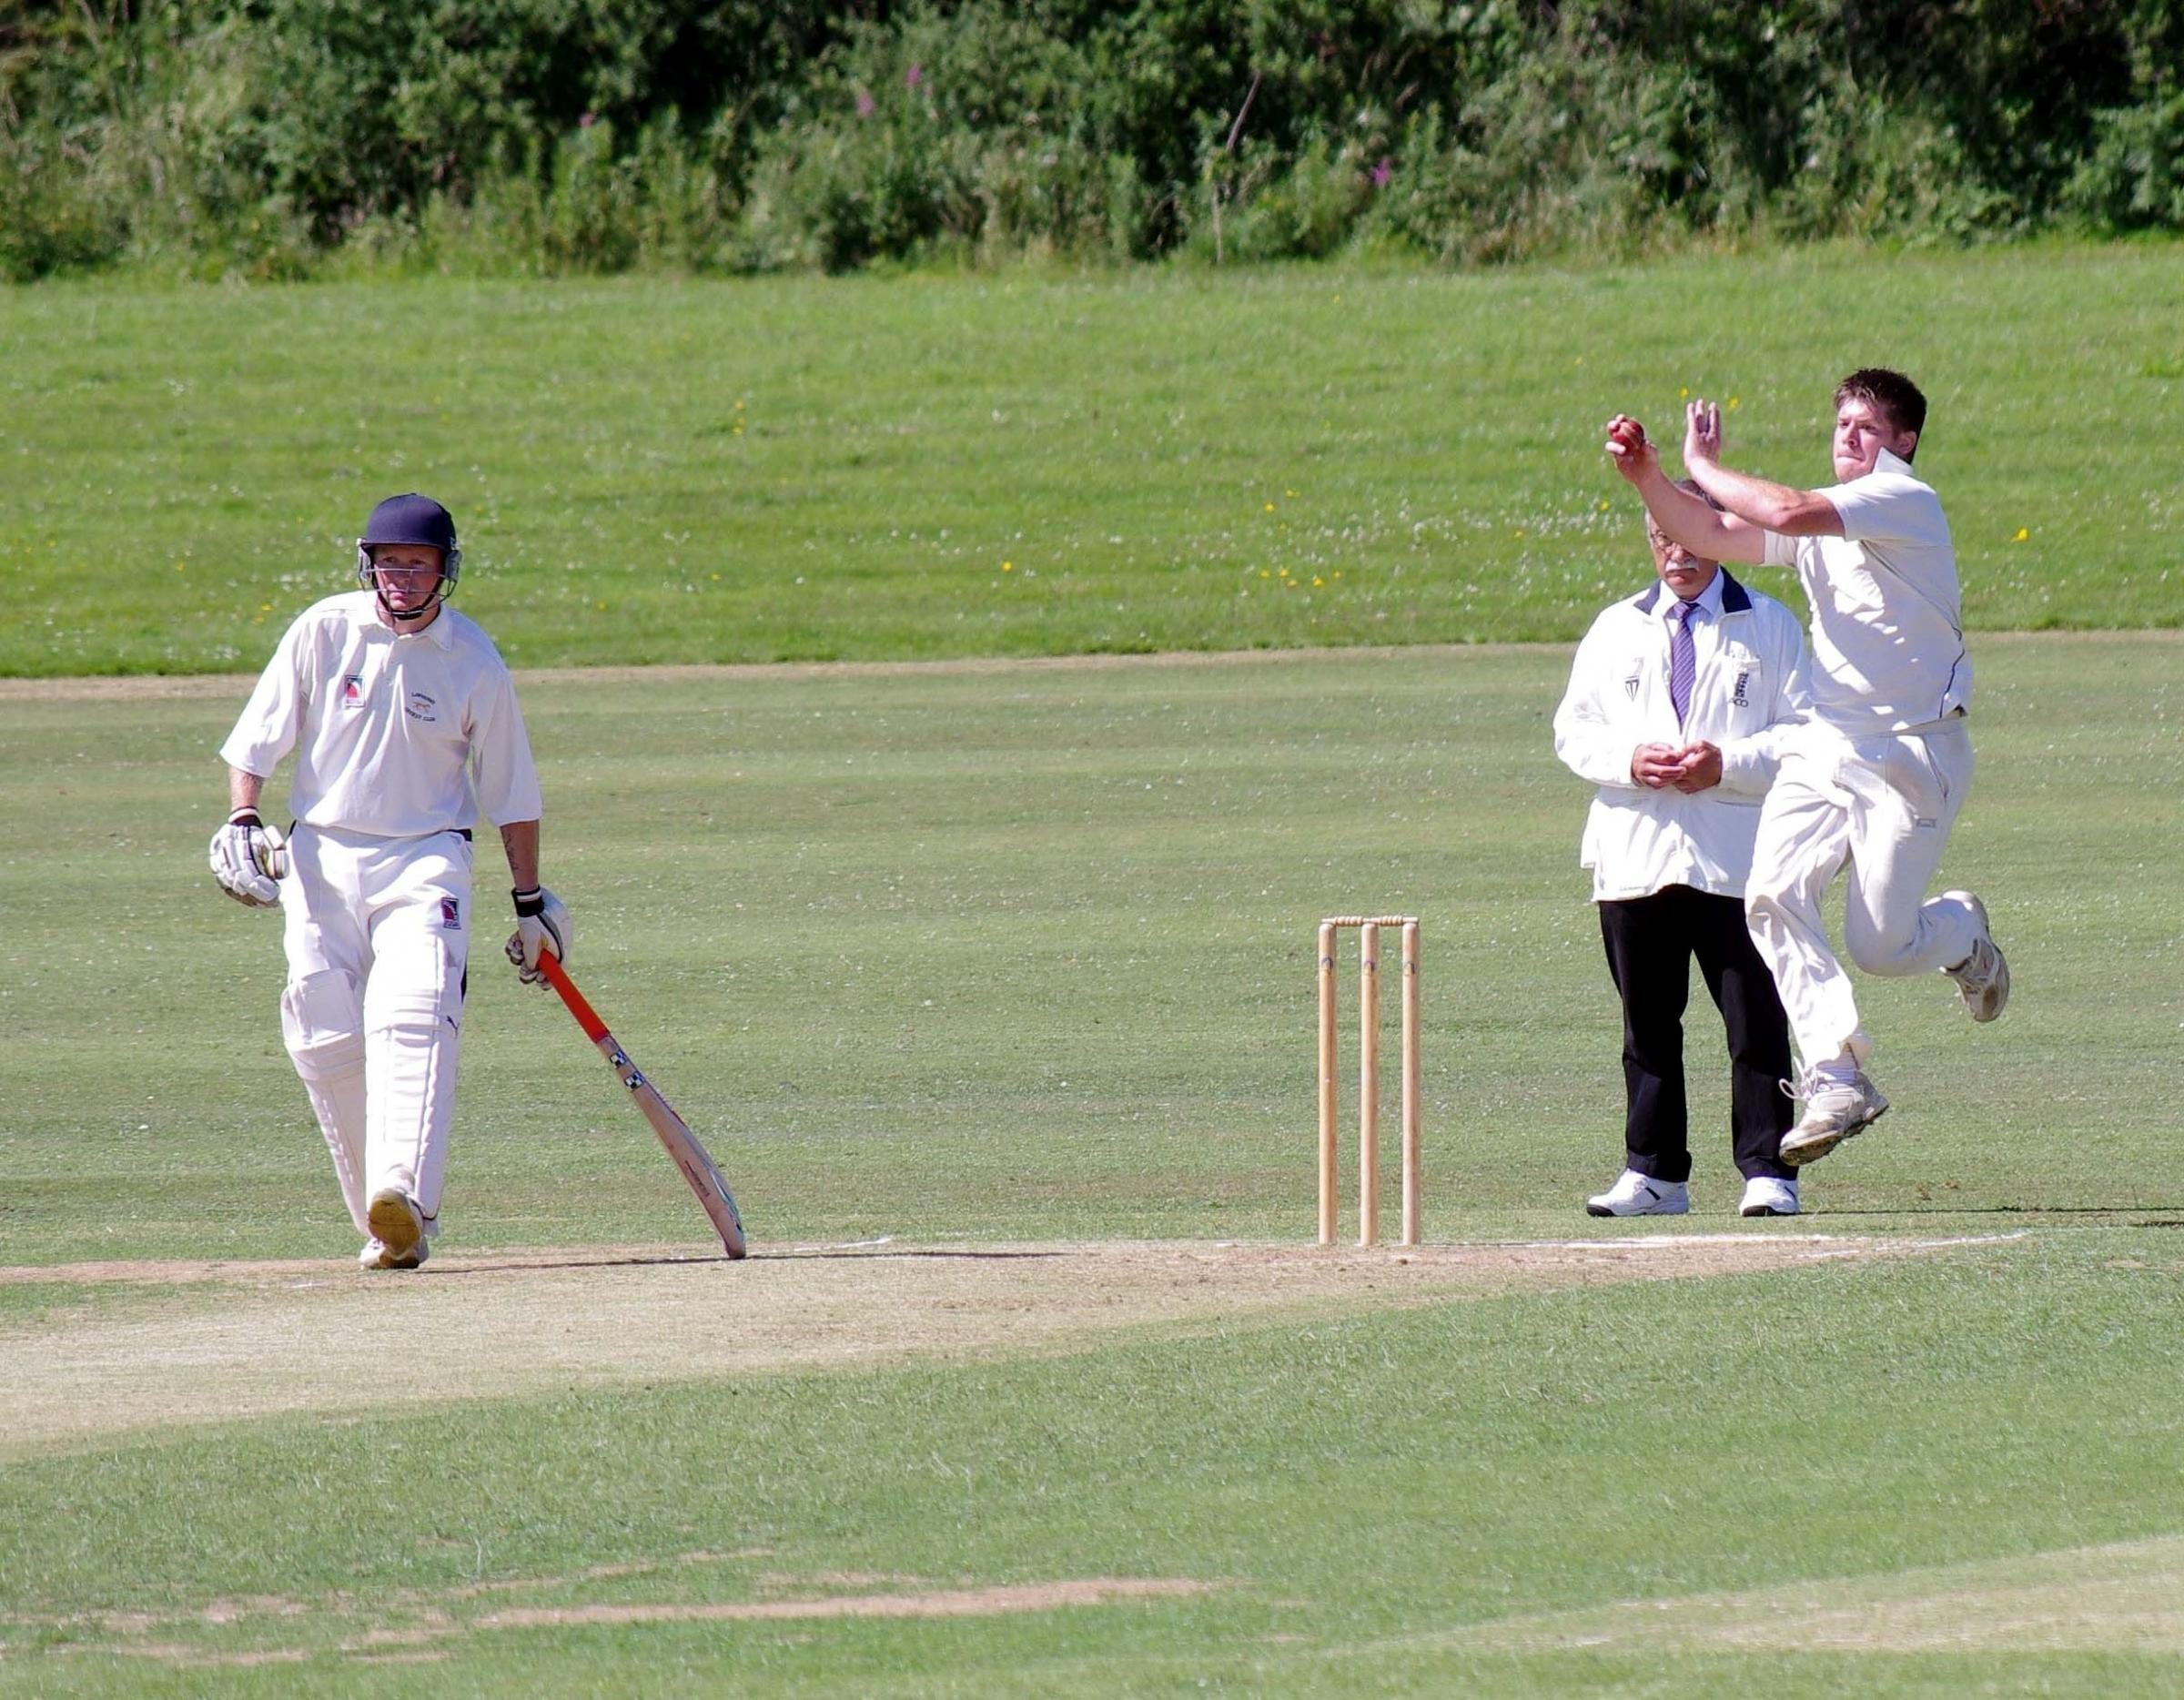 WICKET TAKER: Adam James took six wickets for Haverfordwest against Lawrenny. PICTURE: Western Telegraph. (7909953)